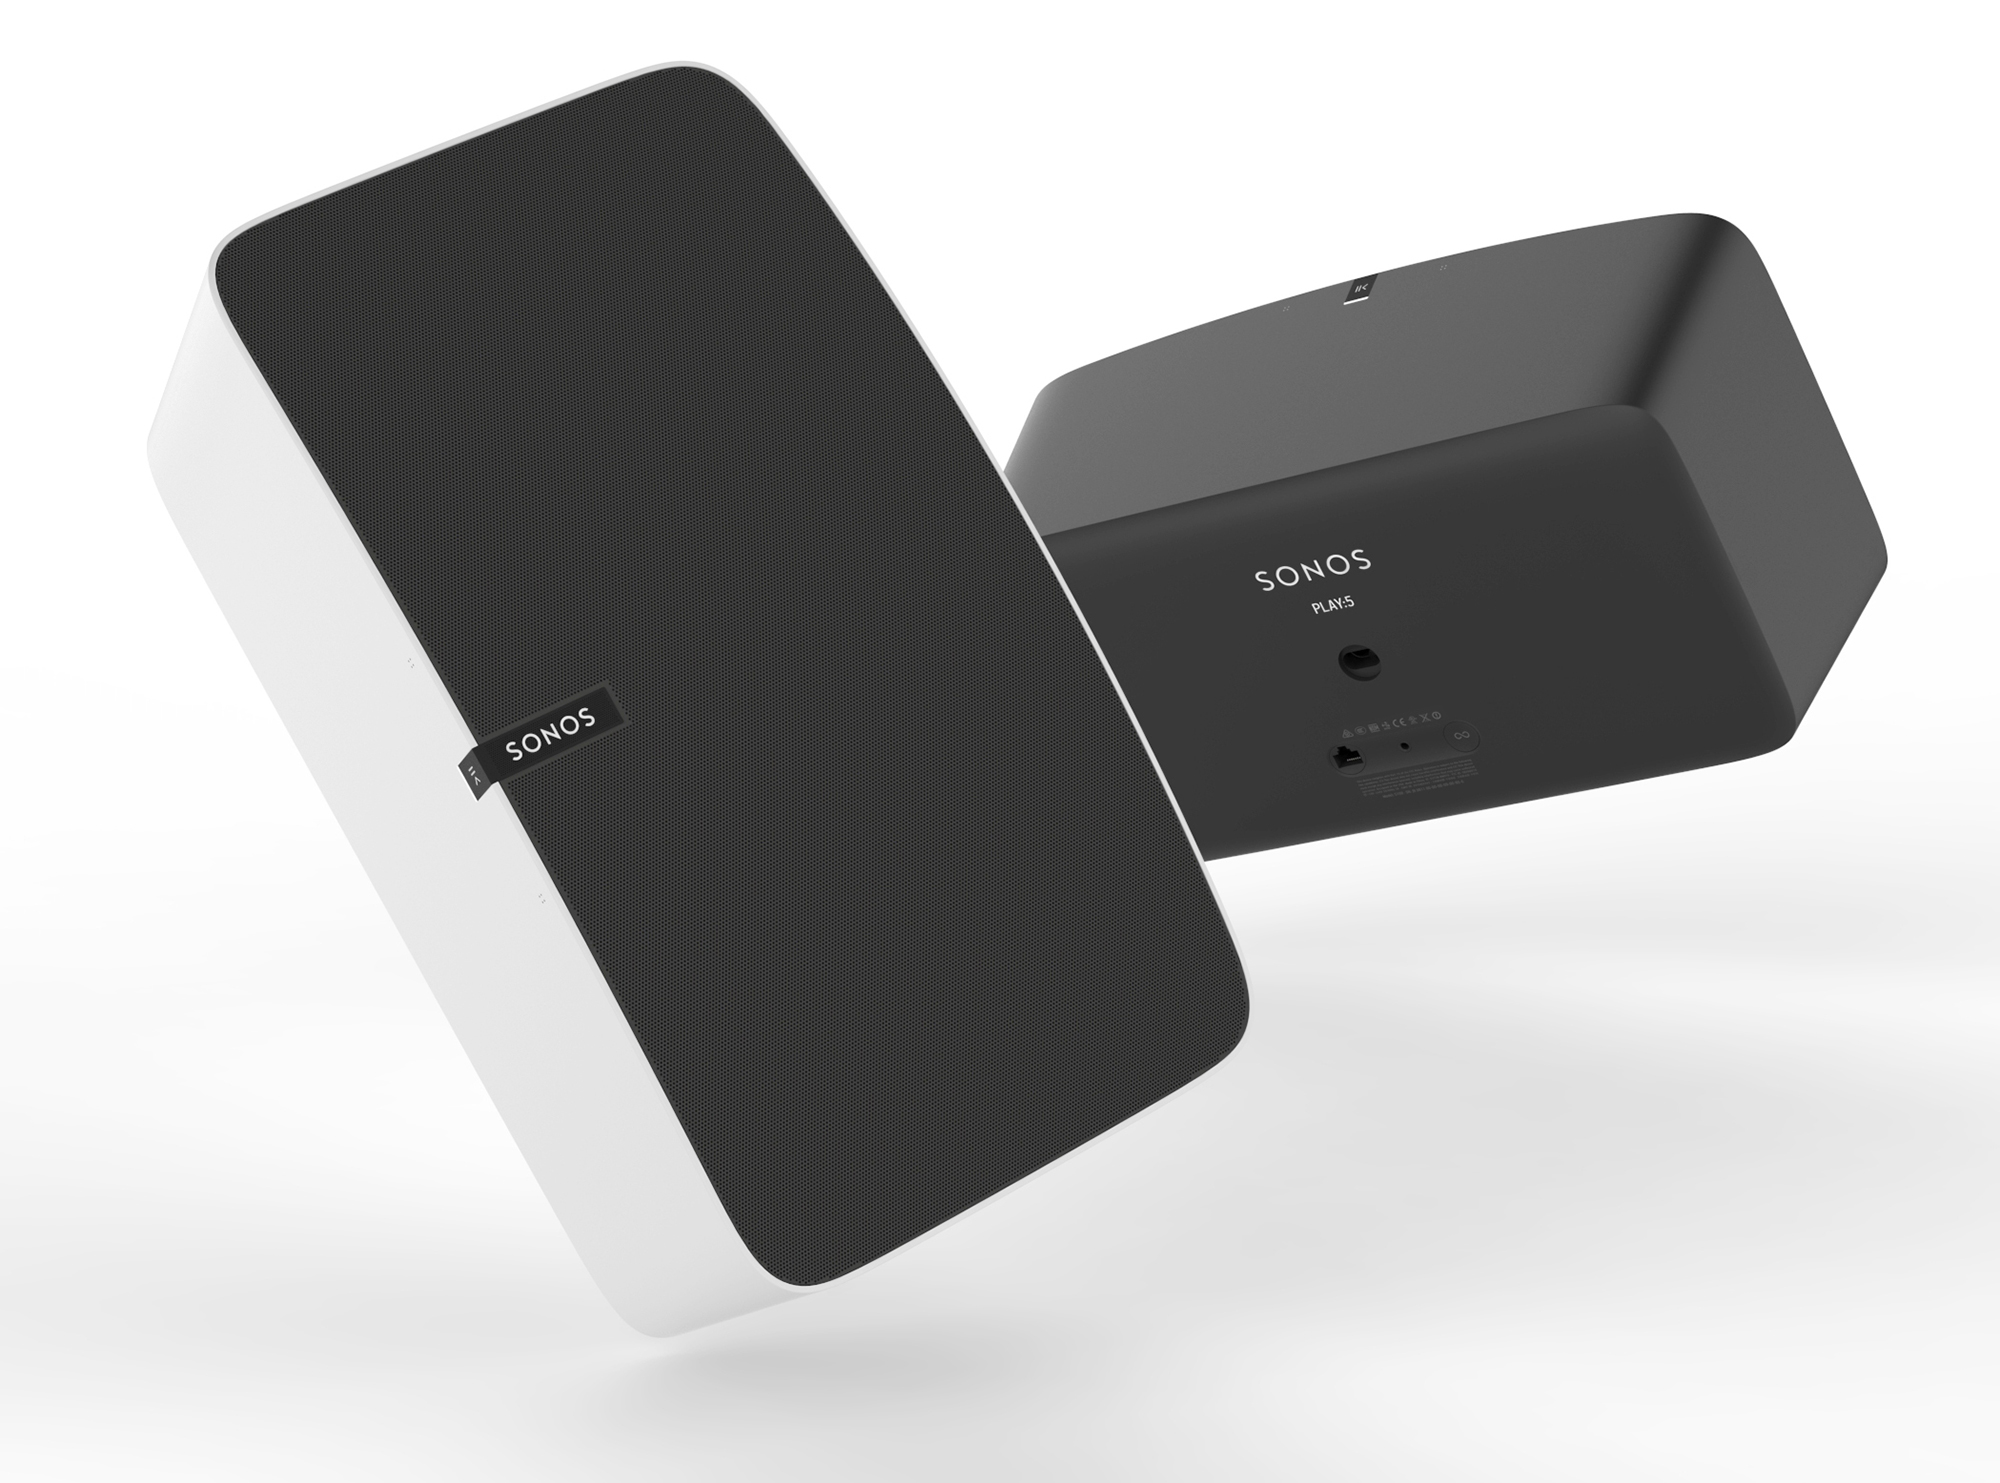 sonos-play5-keyshot-09